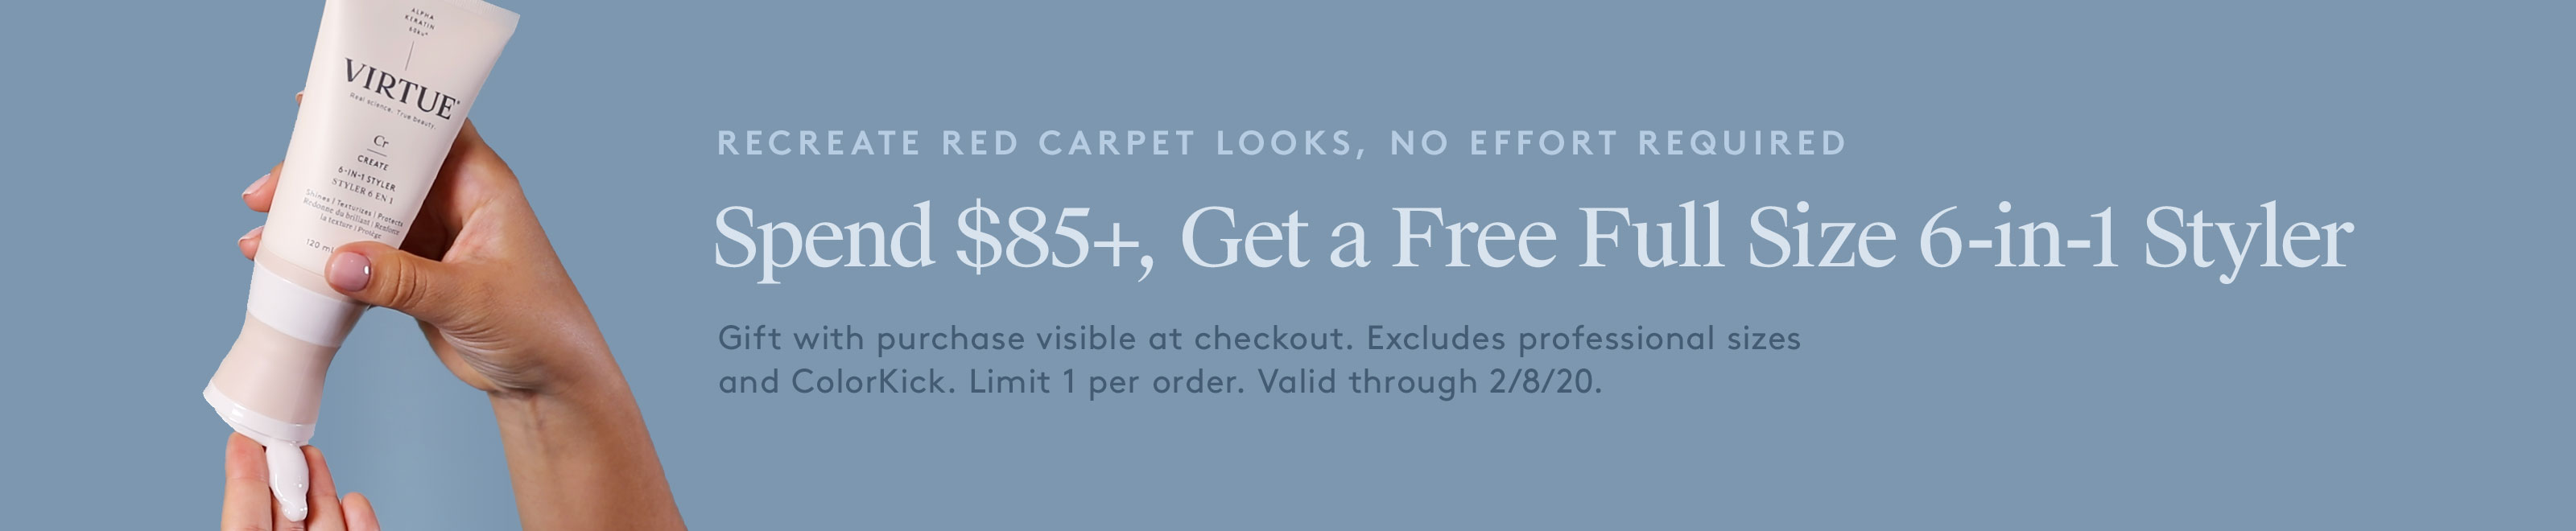 Spend $85+, Get a Free Full Size 6-in-1 Styler